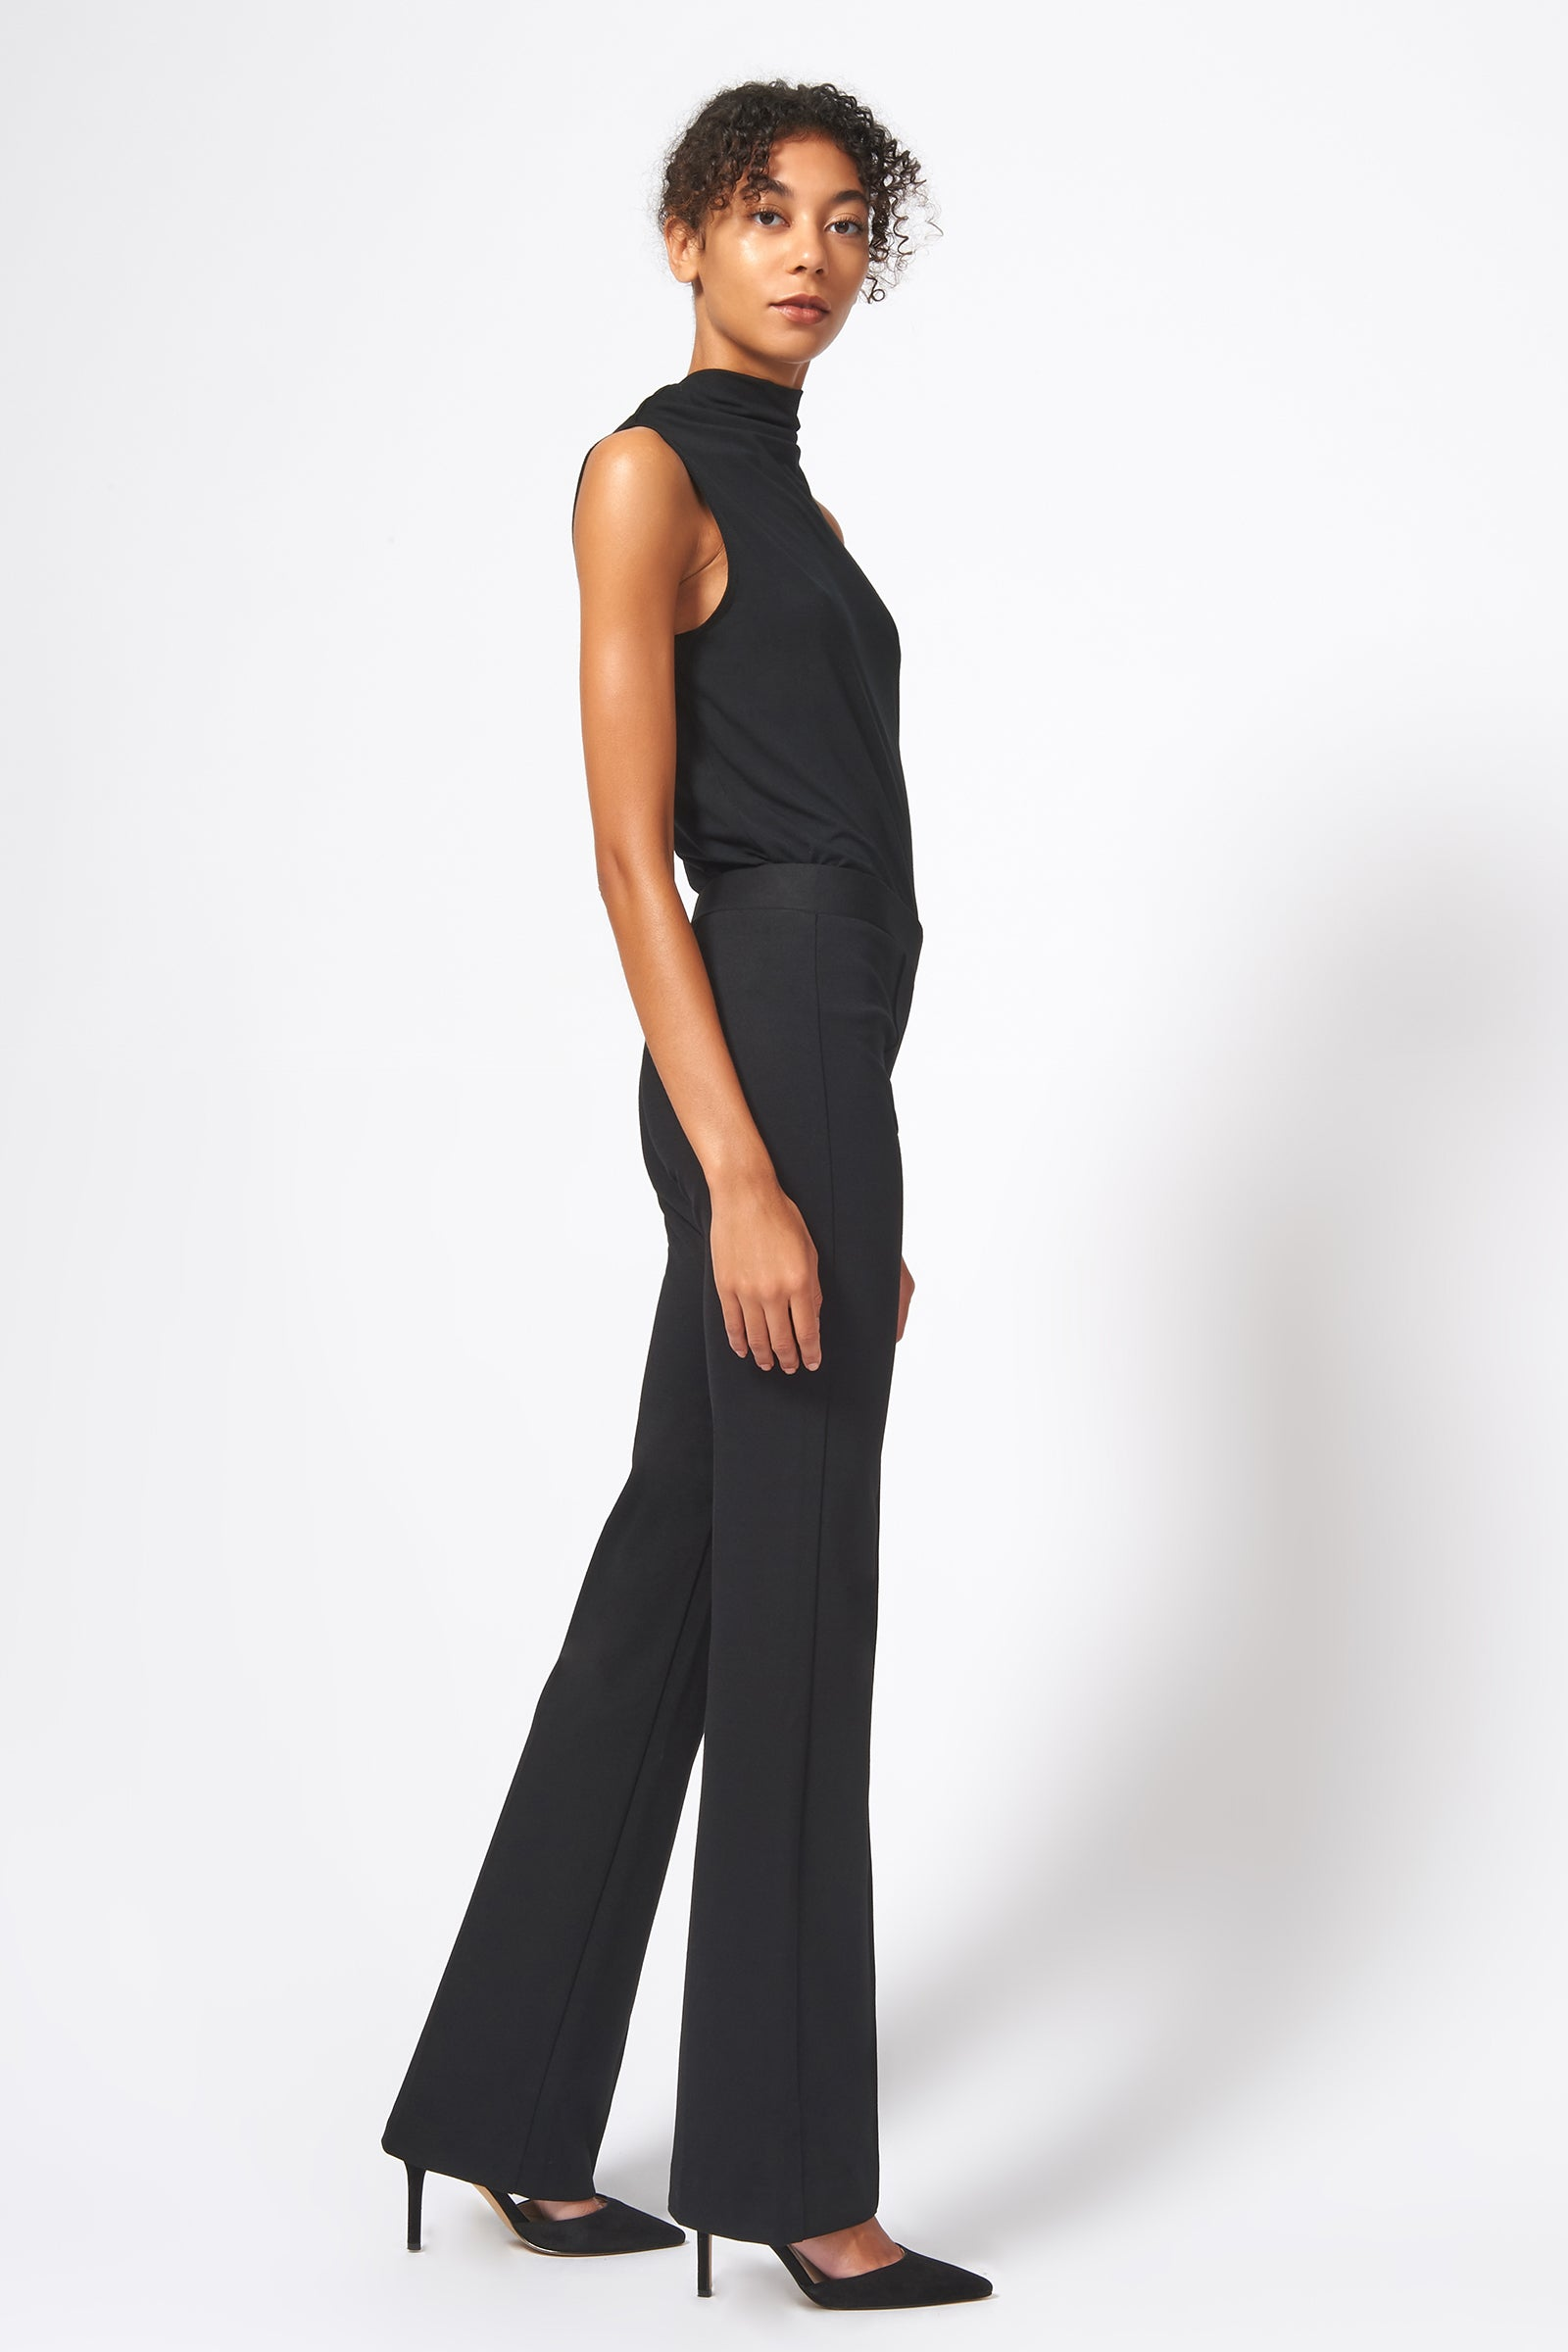 Kal Rieman Pintuck Ponte Column Pant in Black on Model Full Side View